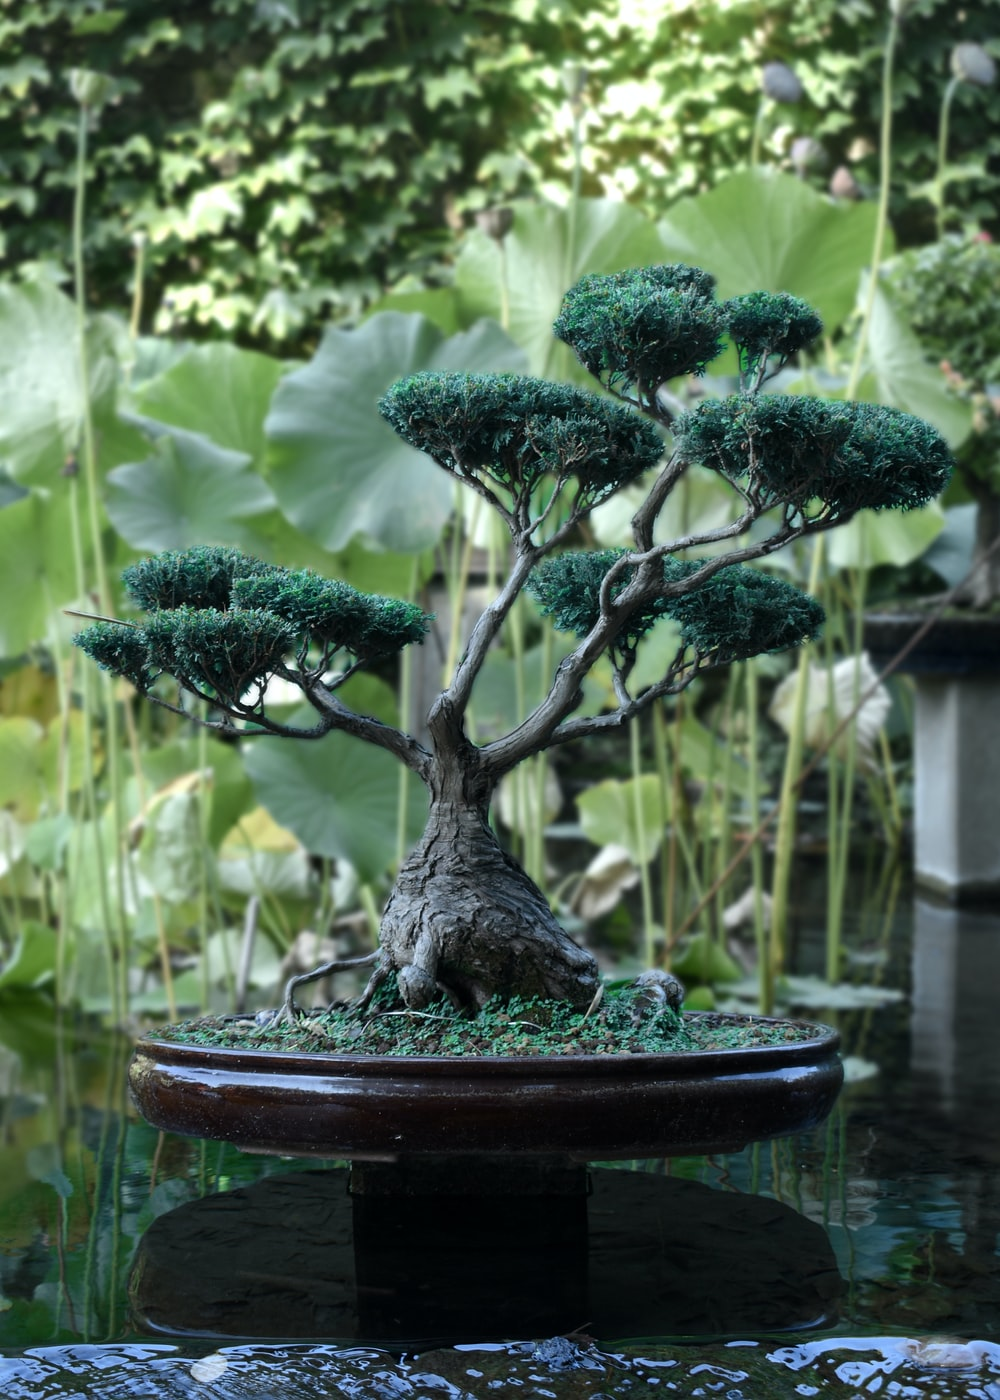 bonsai tree near body of water